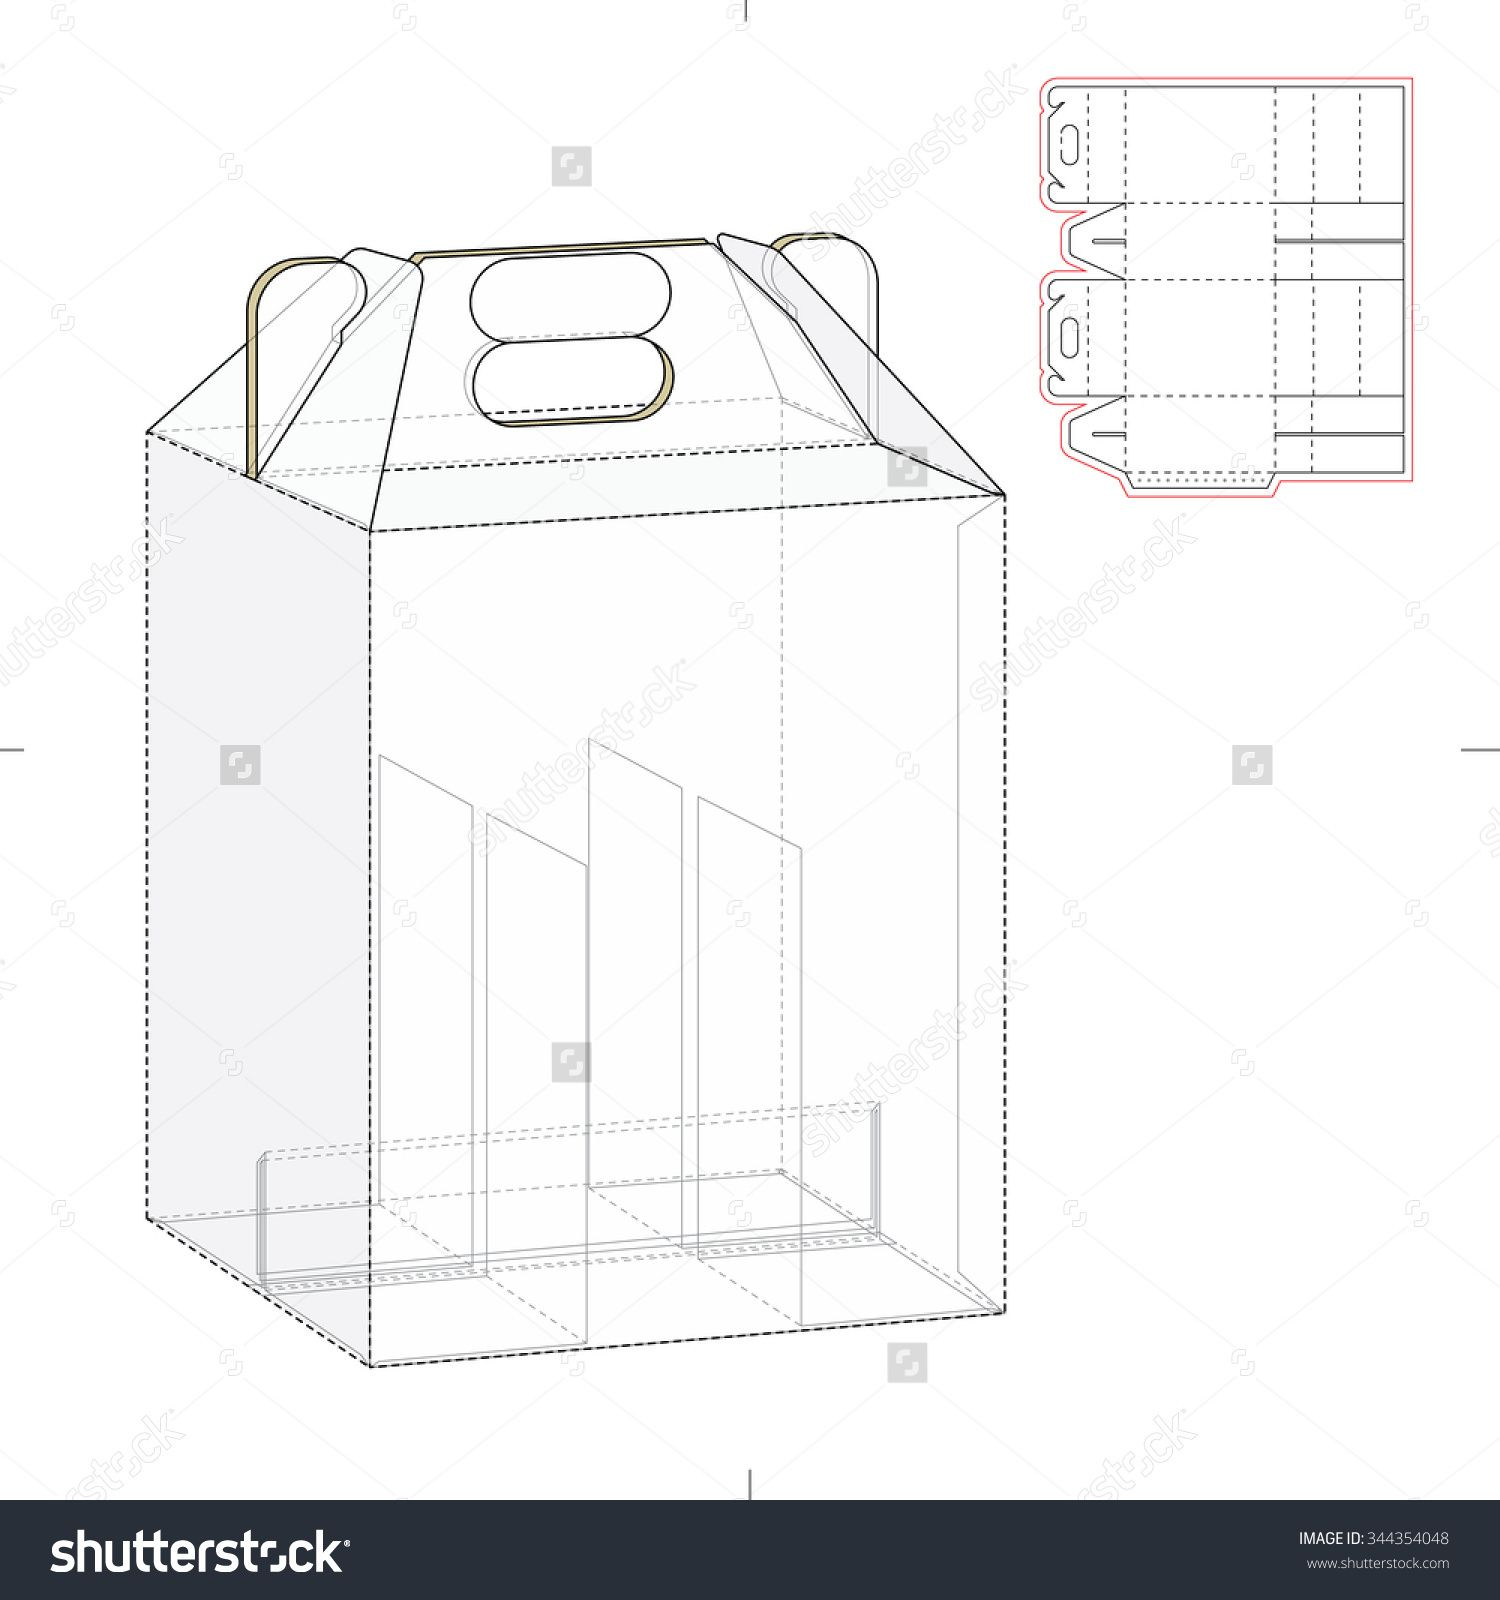 Troquelado fotos en stock troquelado fotografa en stock six pack carrier box with die cut template stock vector illustration 344354048 shutterstock pronofoot35fo Gallery